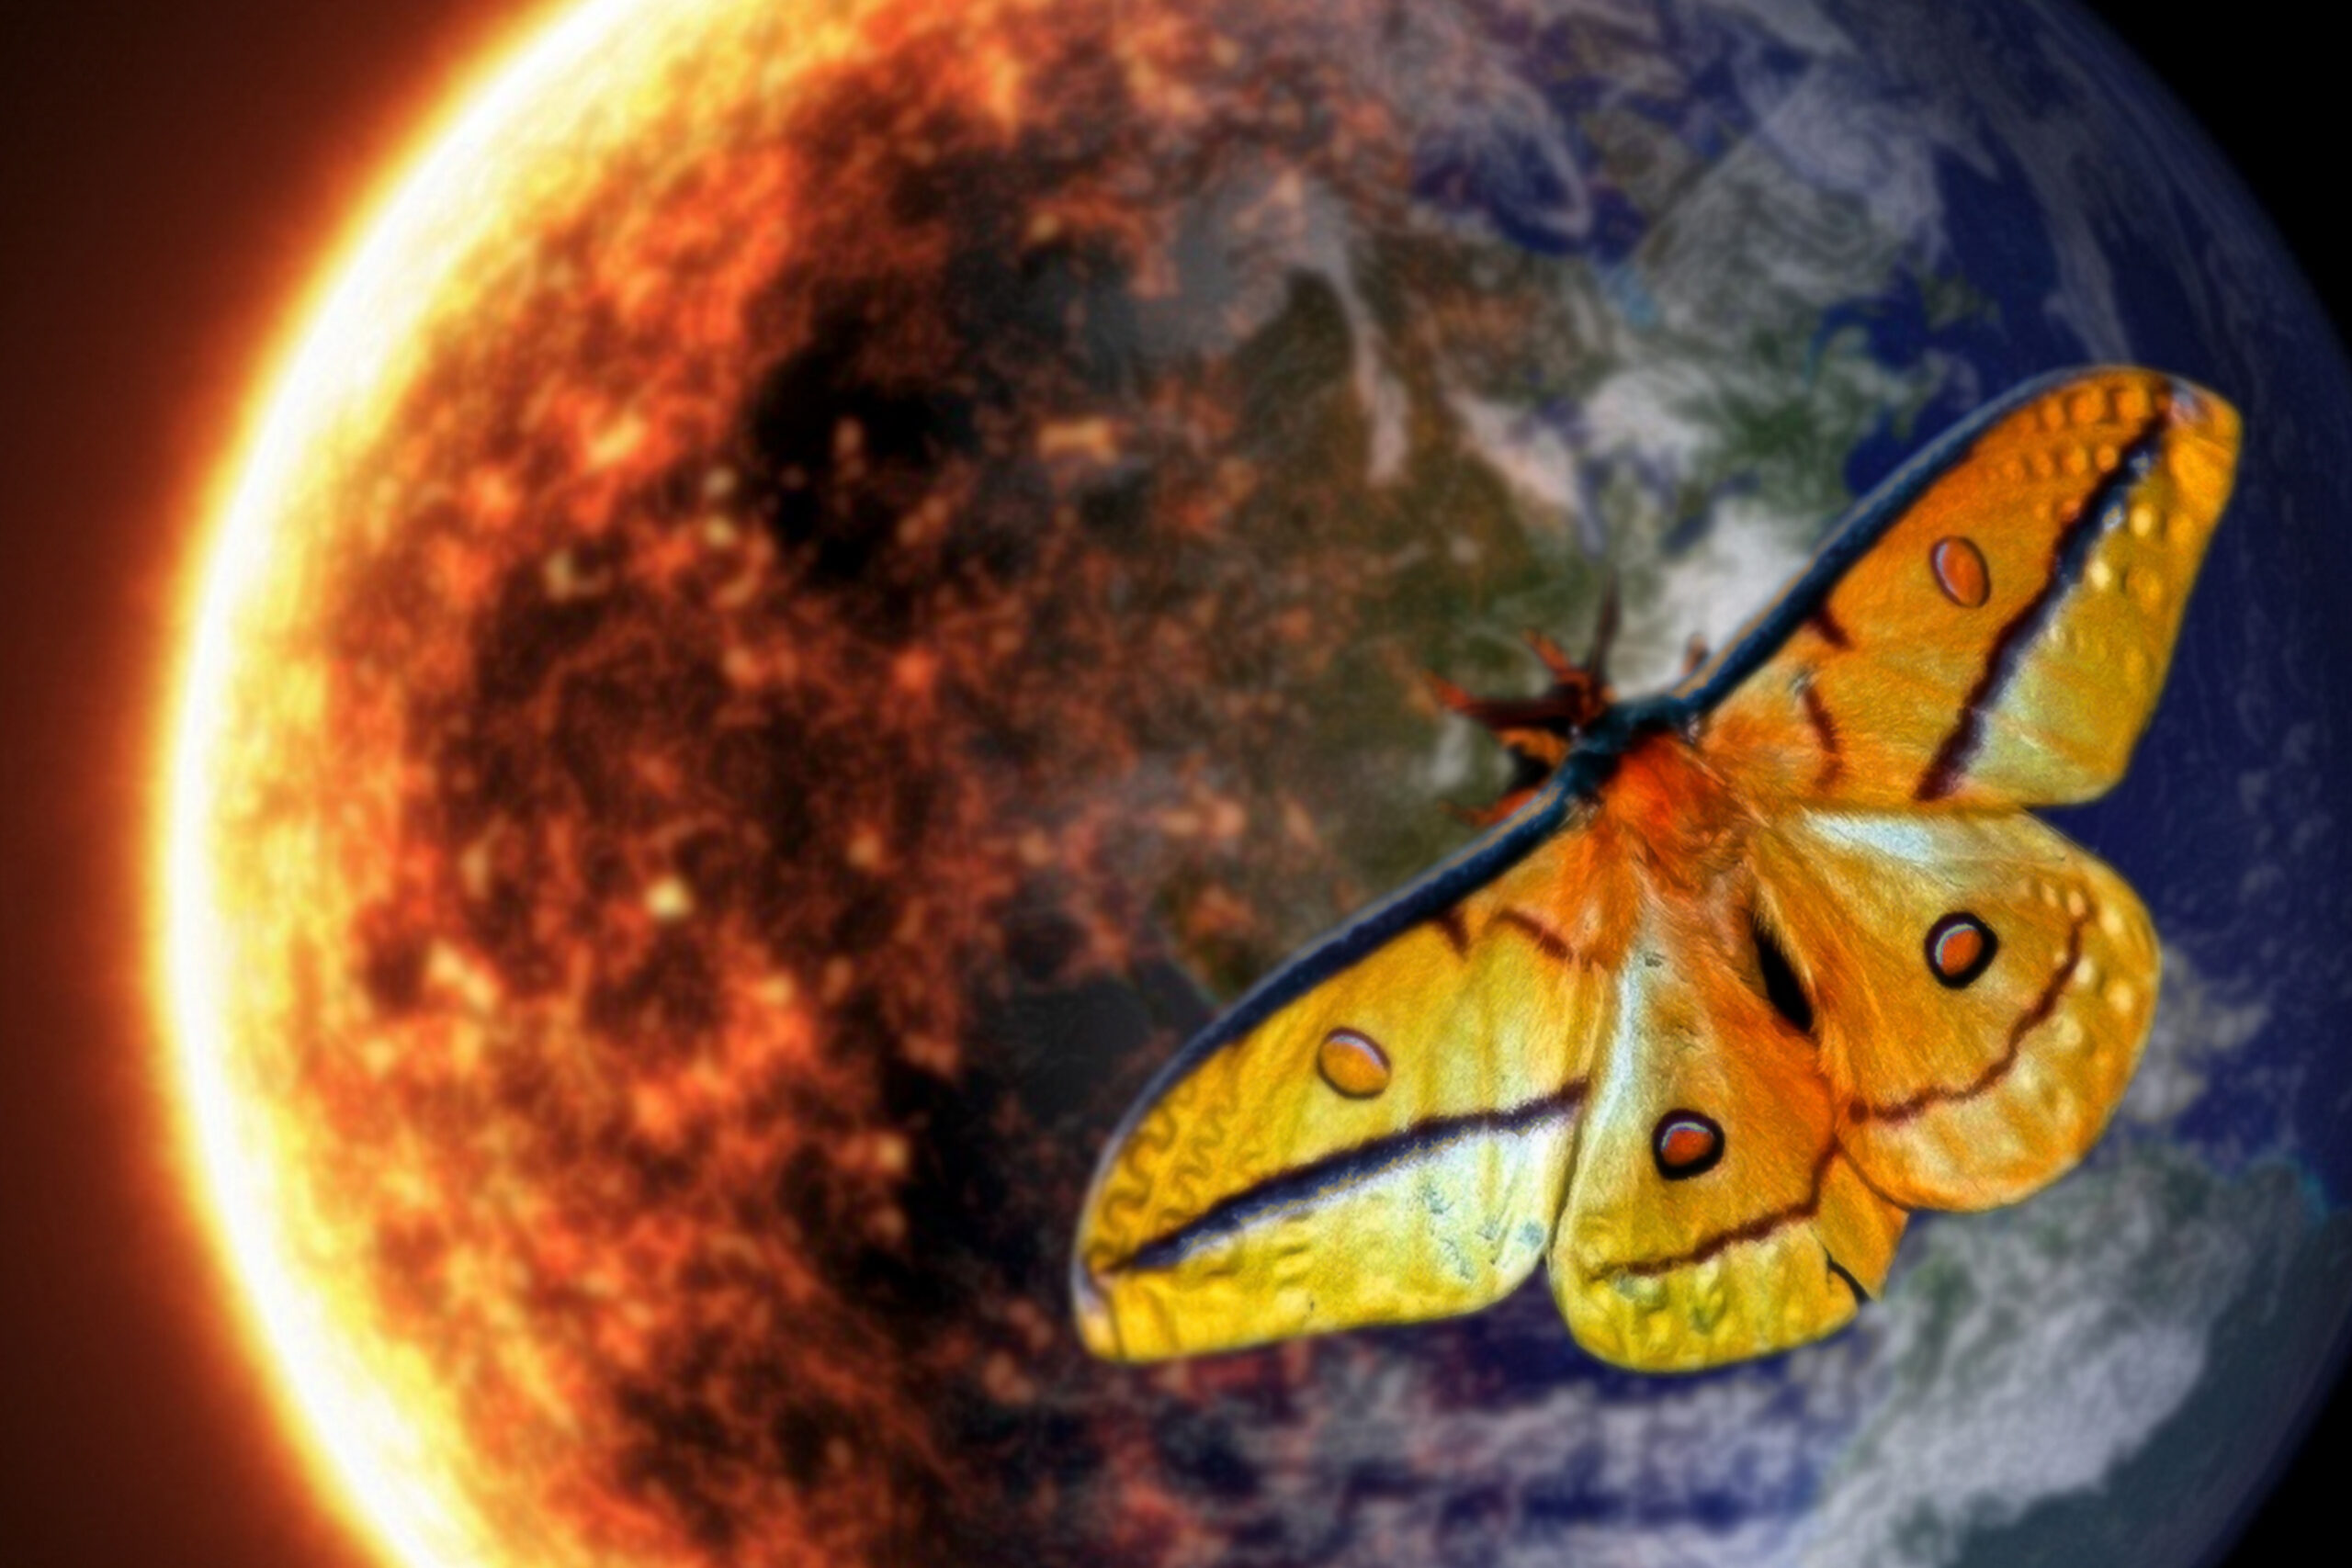 <h1>Moth vs Flame: Reason, Instinct and Humanity's Struggle toSurvive</h1> <h4>Why moths fly into flames and what it has to do with the end ofhumanity</h4>